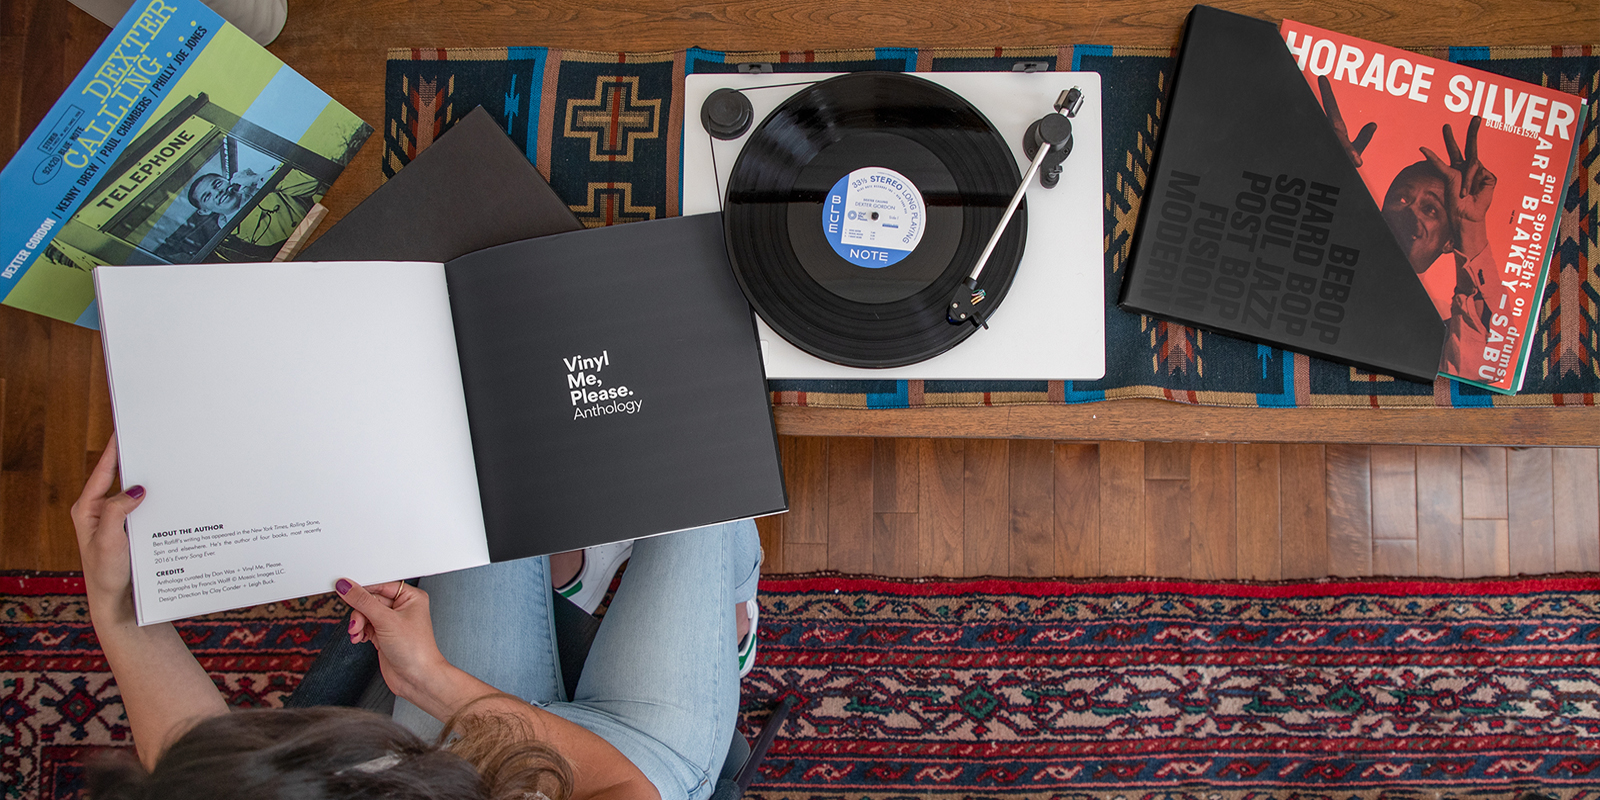 Vinyl Me Please S Blue Note Records Vinyl Box Set Sells Out In 3 Hours Blue Note Records